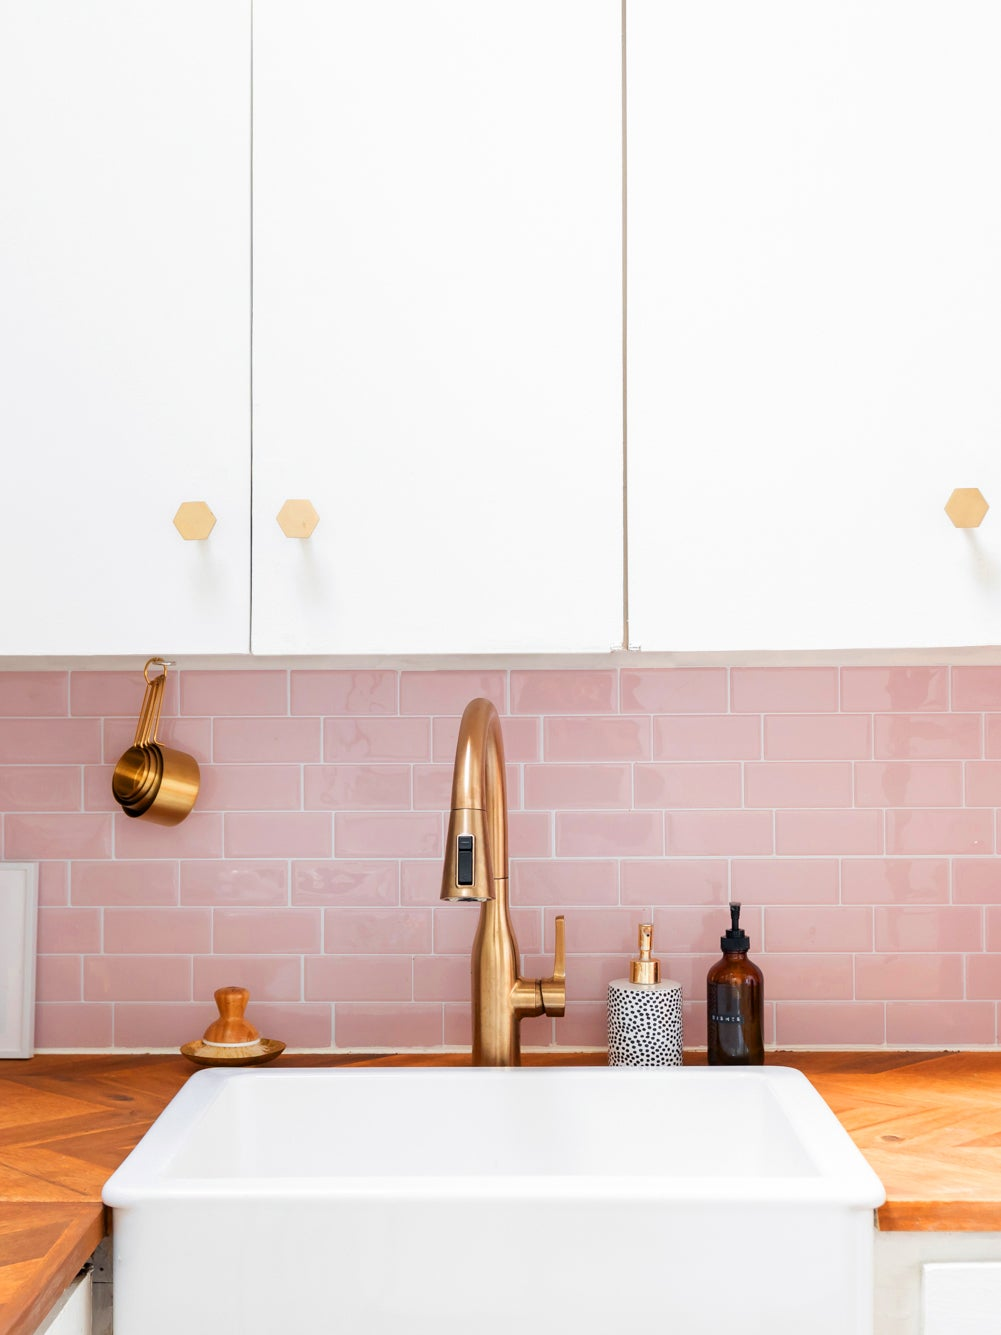 00-FEATURE-pink-subway-tile-kitchen-domino